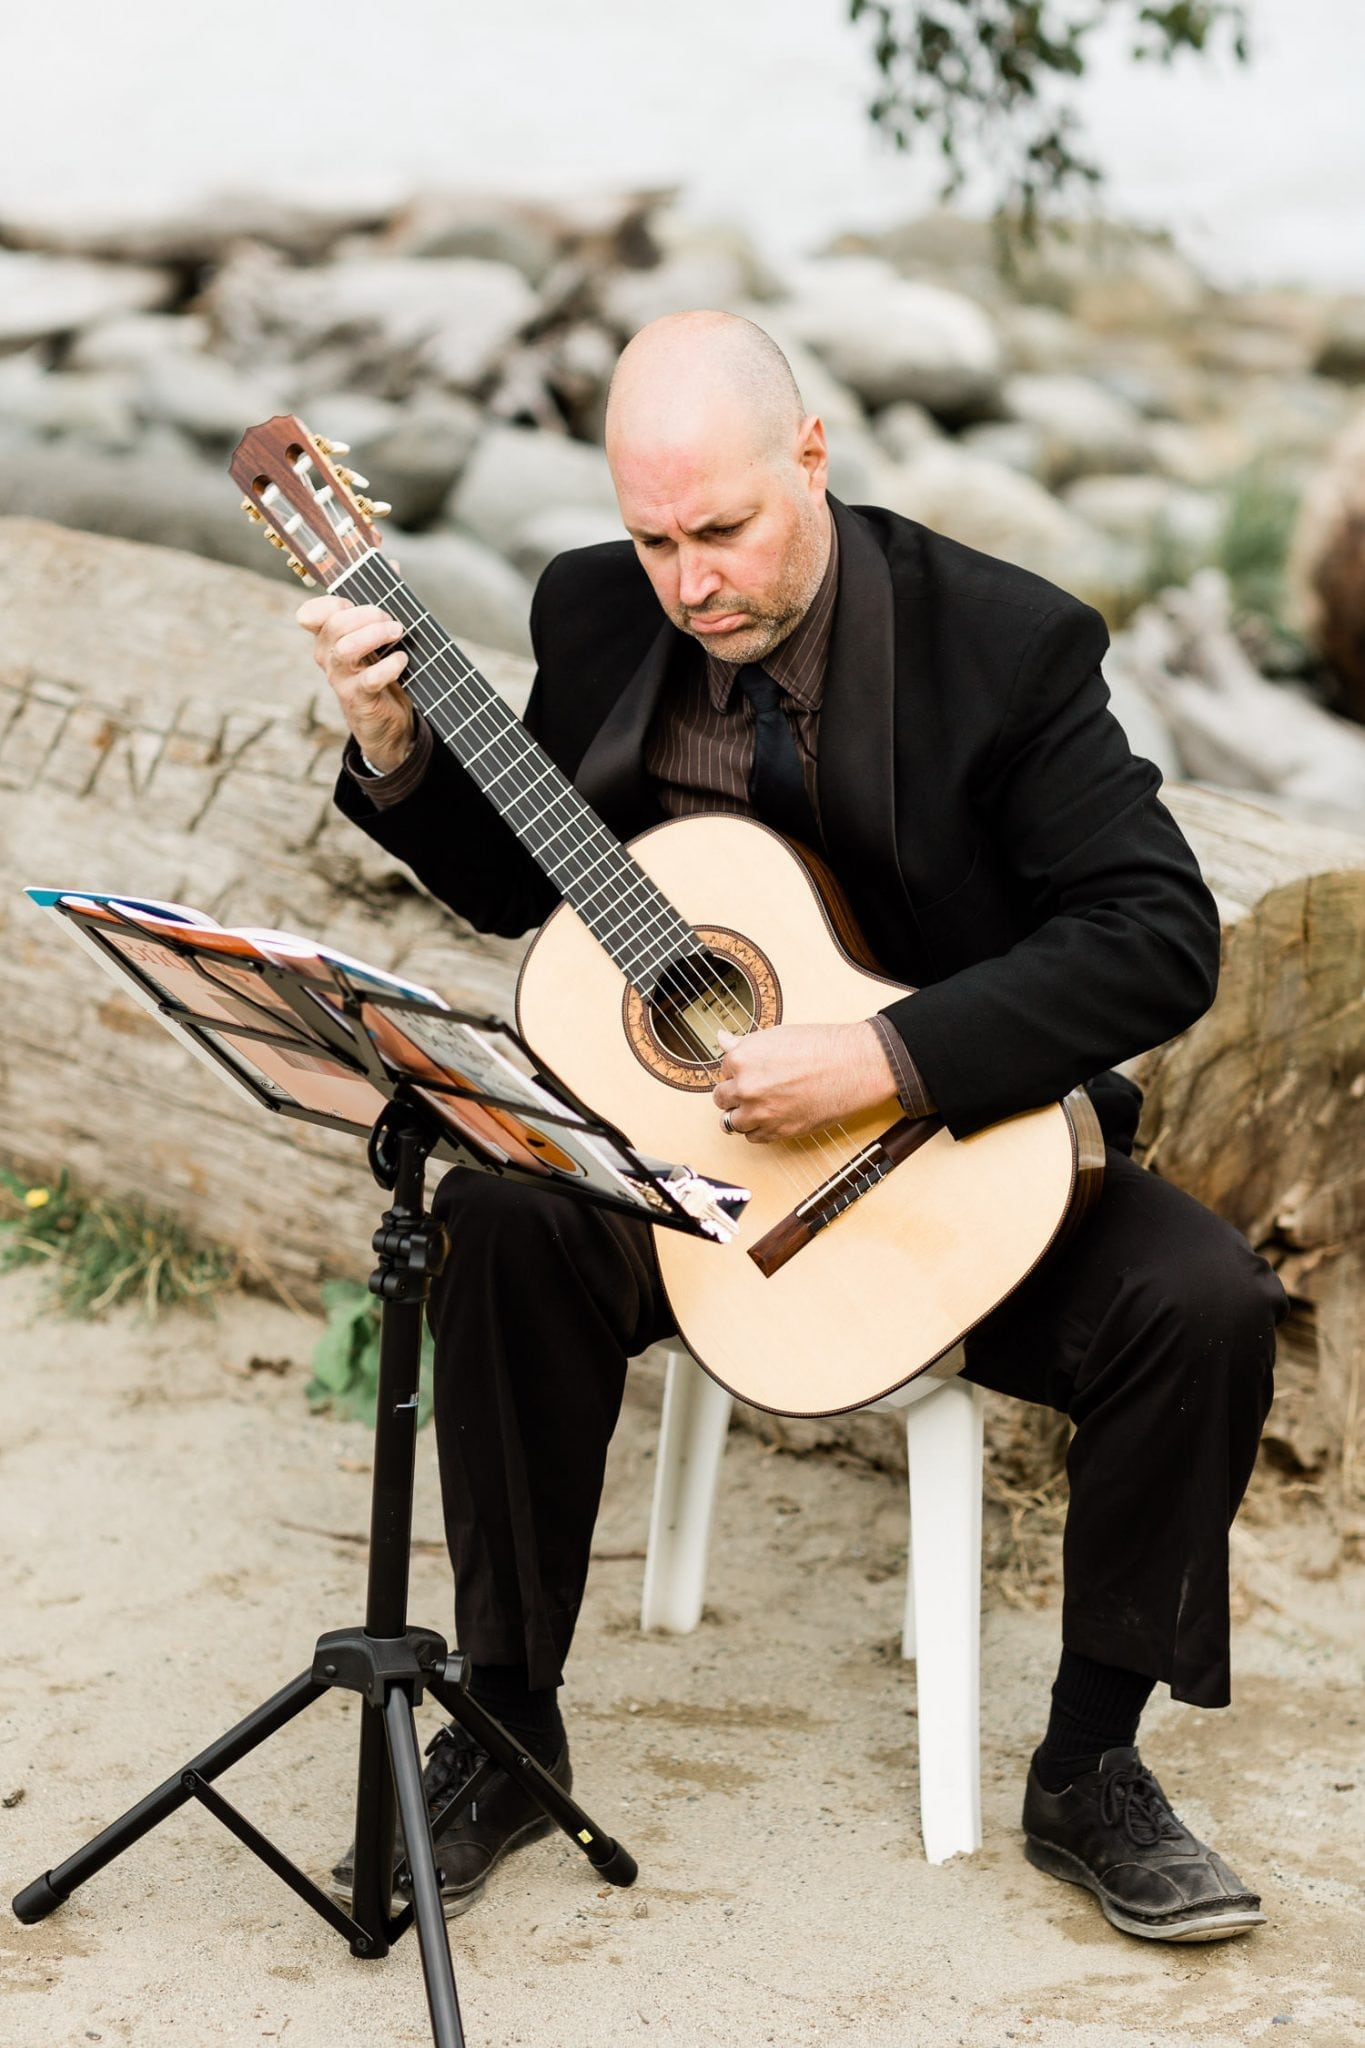 Guitarist on the wedding | Vancouver wedding photographer